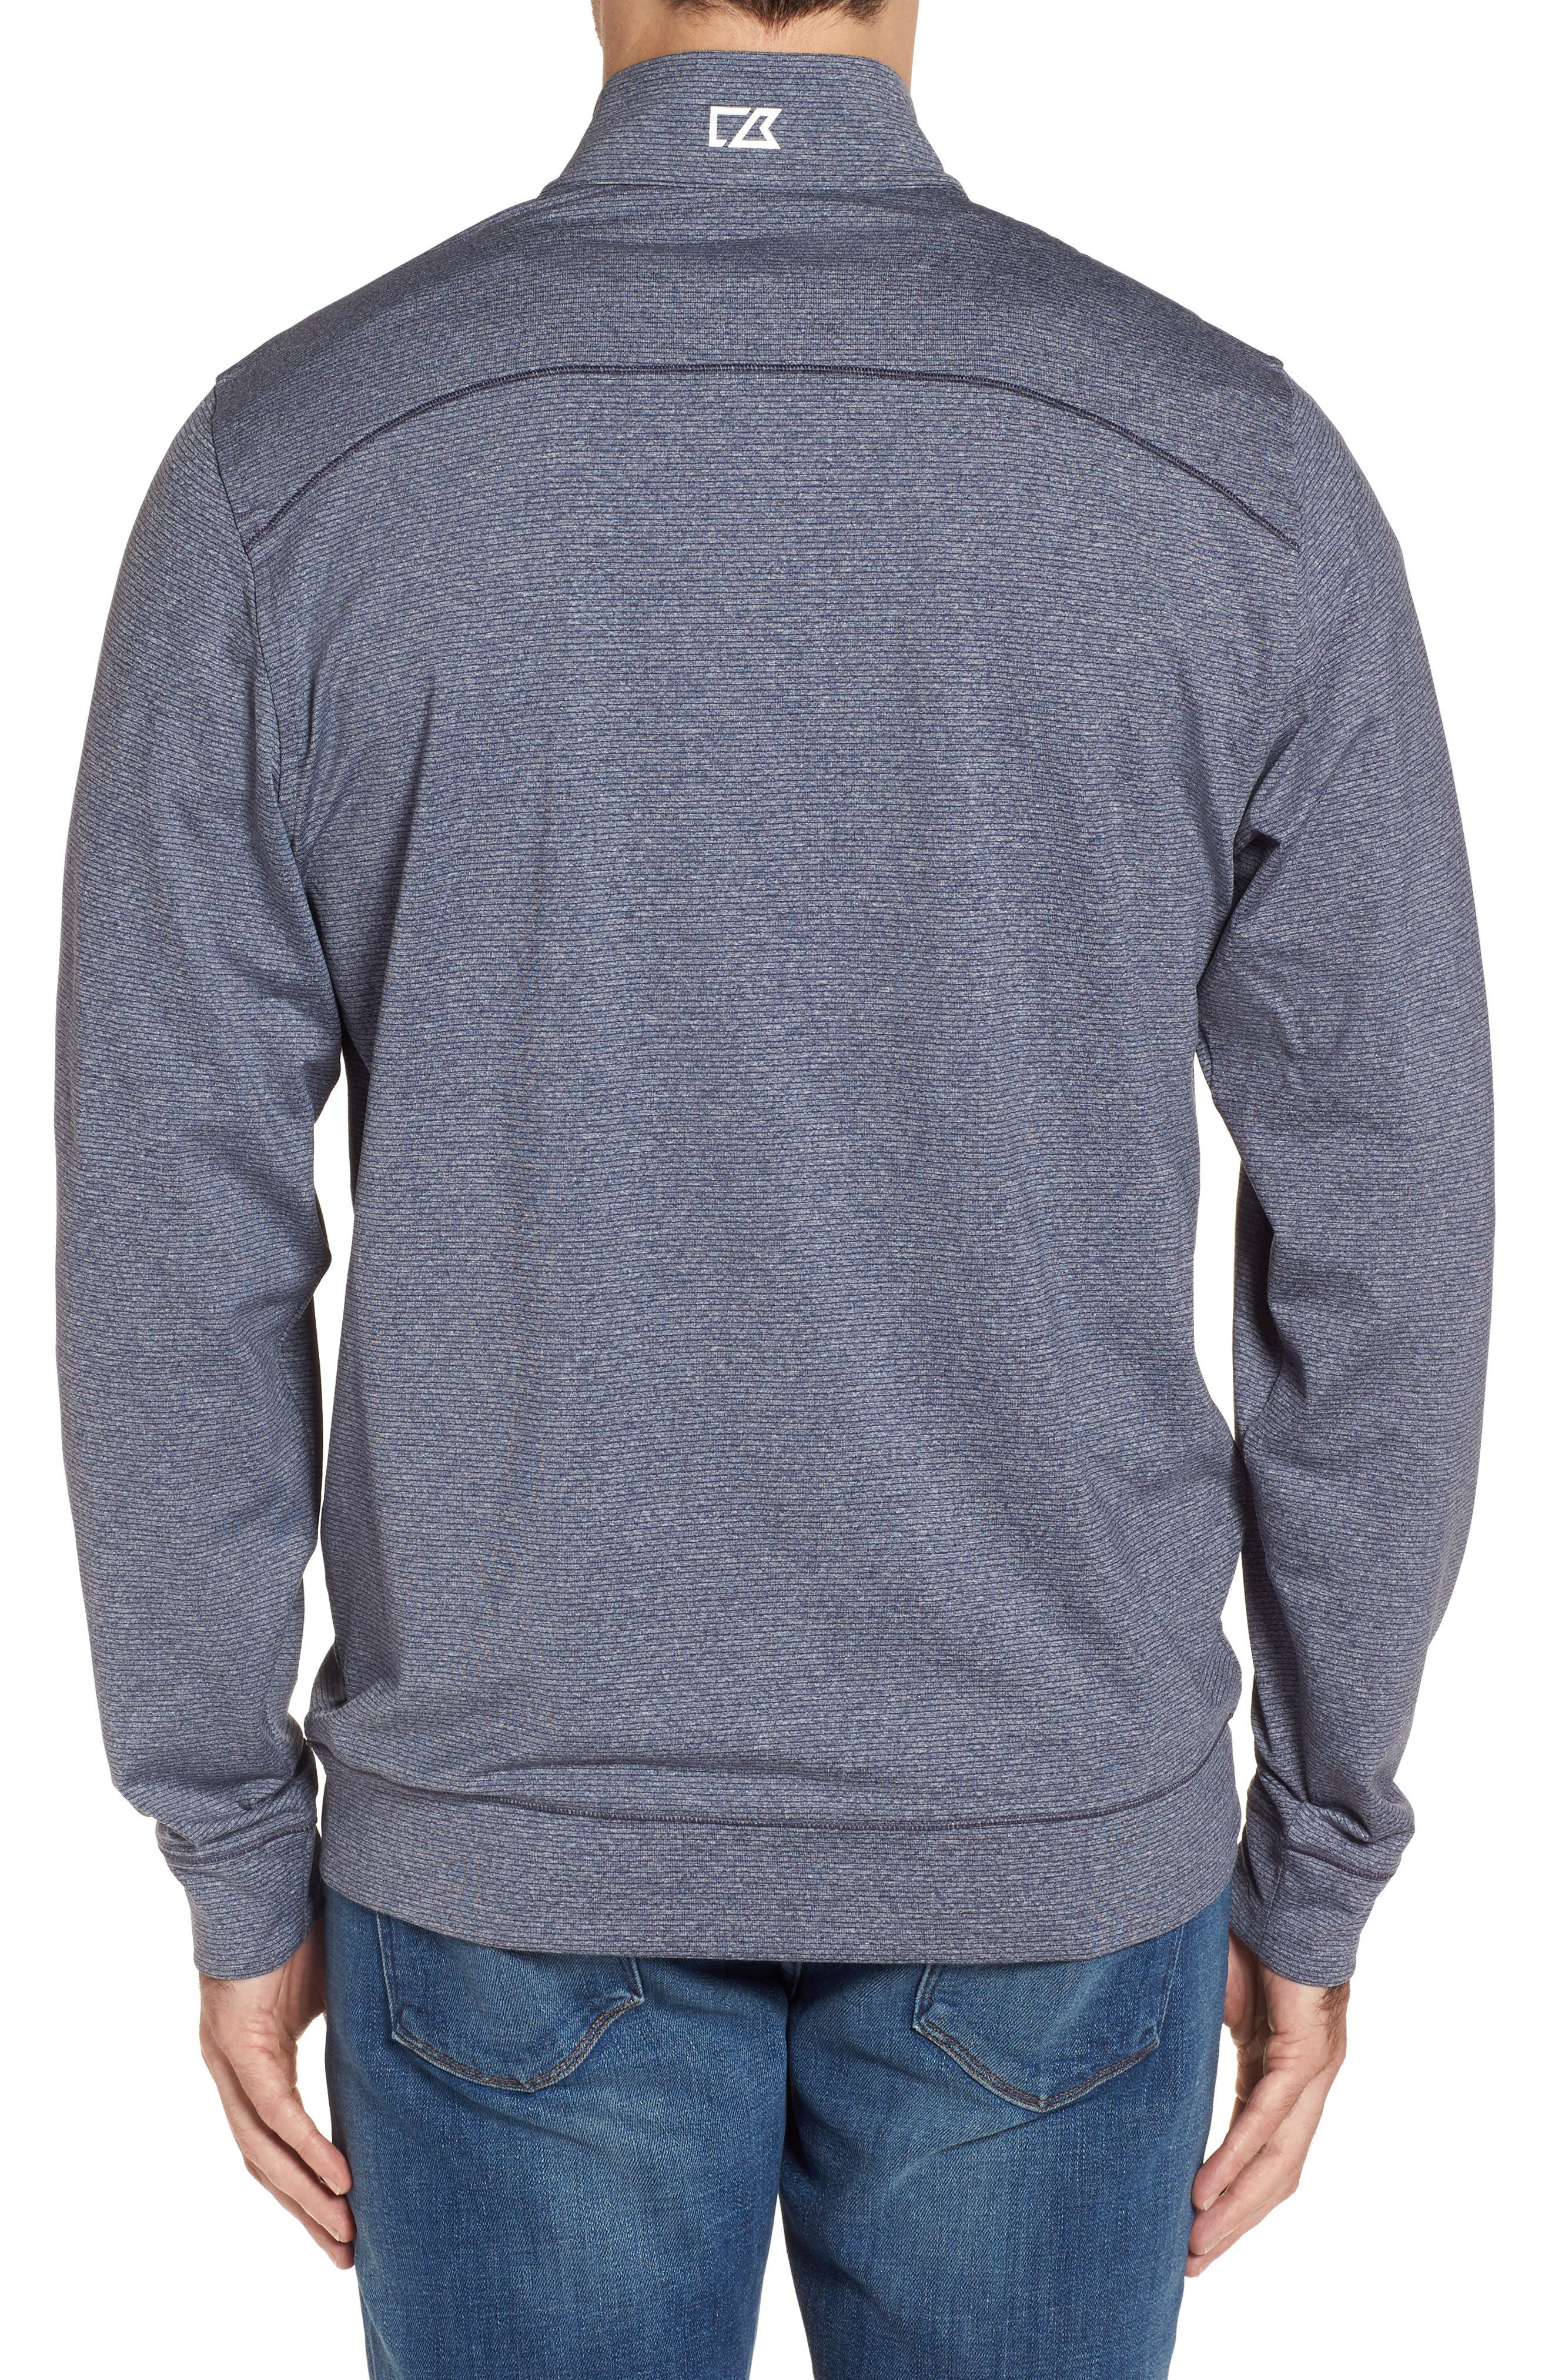 Seahawks Shoreline Quarter Zip Pullover,                             Alternate thumbnail 2, color,                             Liberty Navy Heather